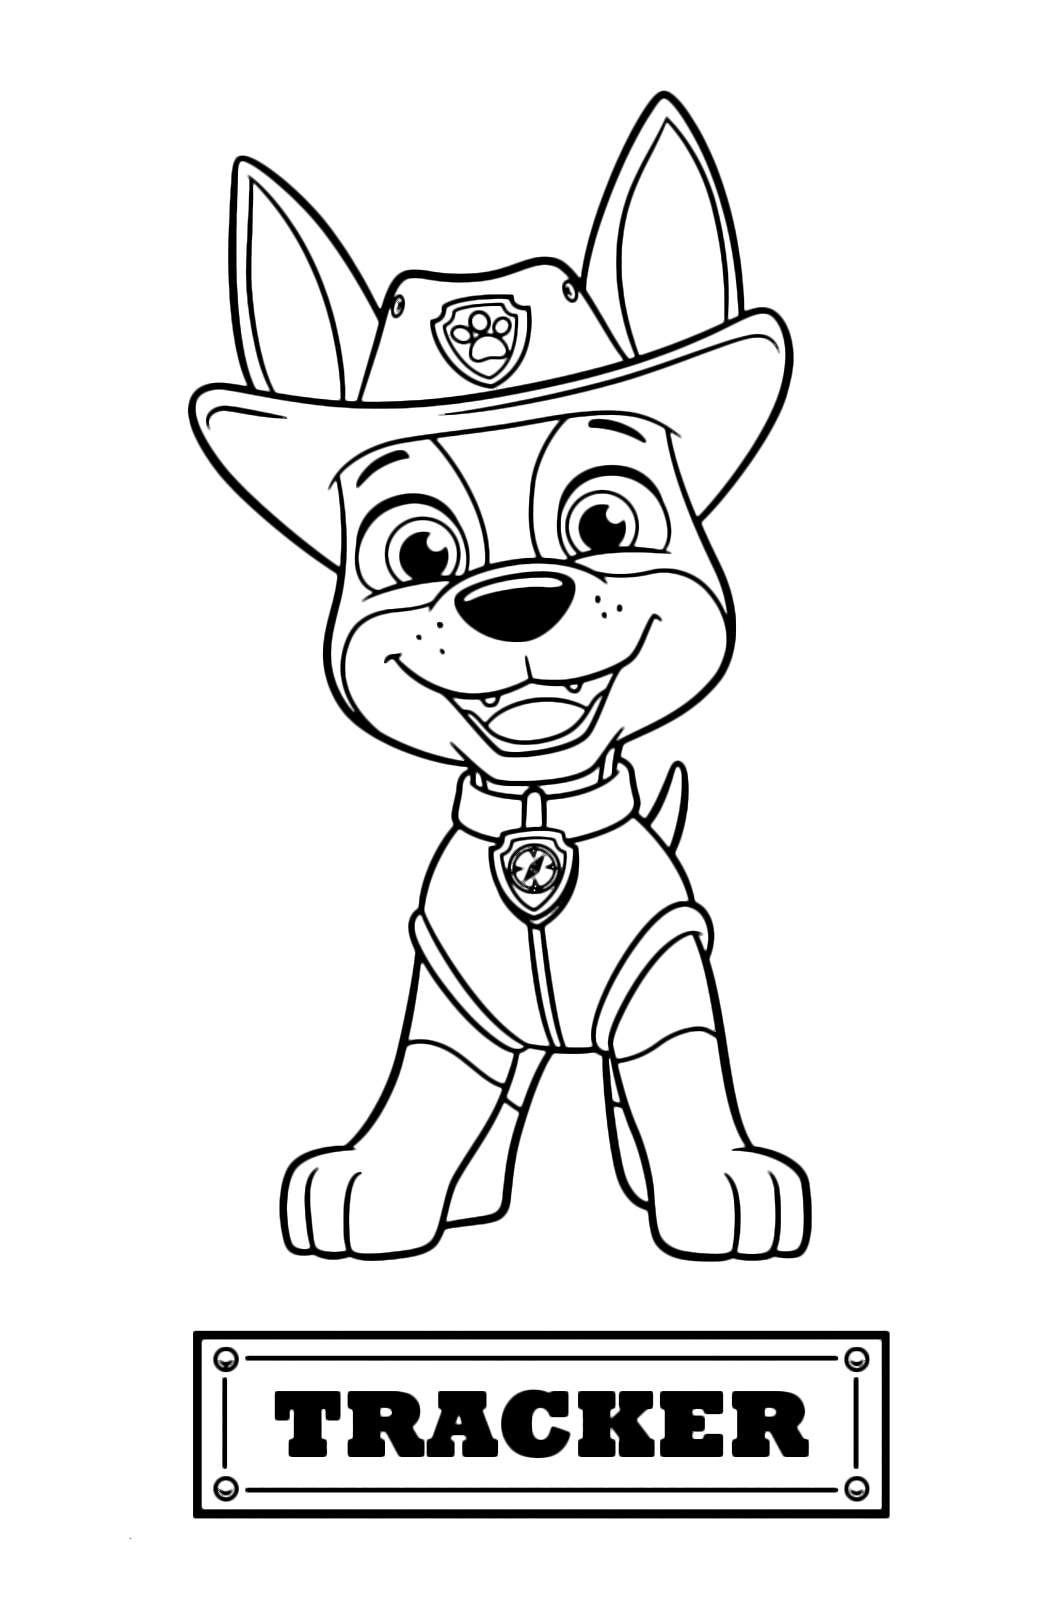 paw patrol coloring sheets rubble paw patrol coloring lesson kids coloring page patrol paw sheets coloring